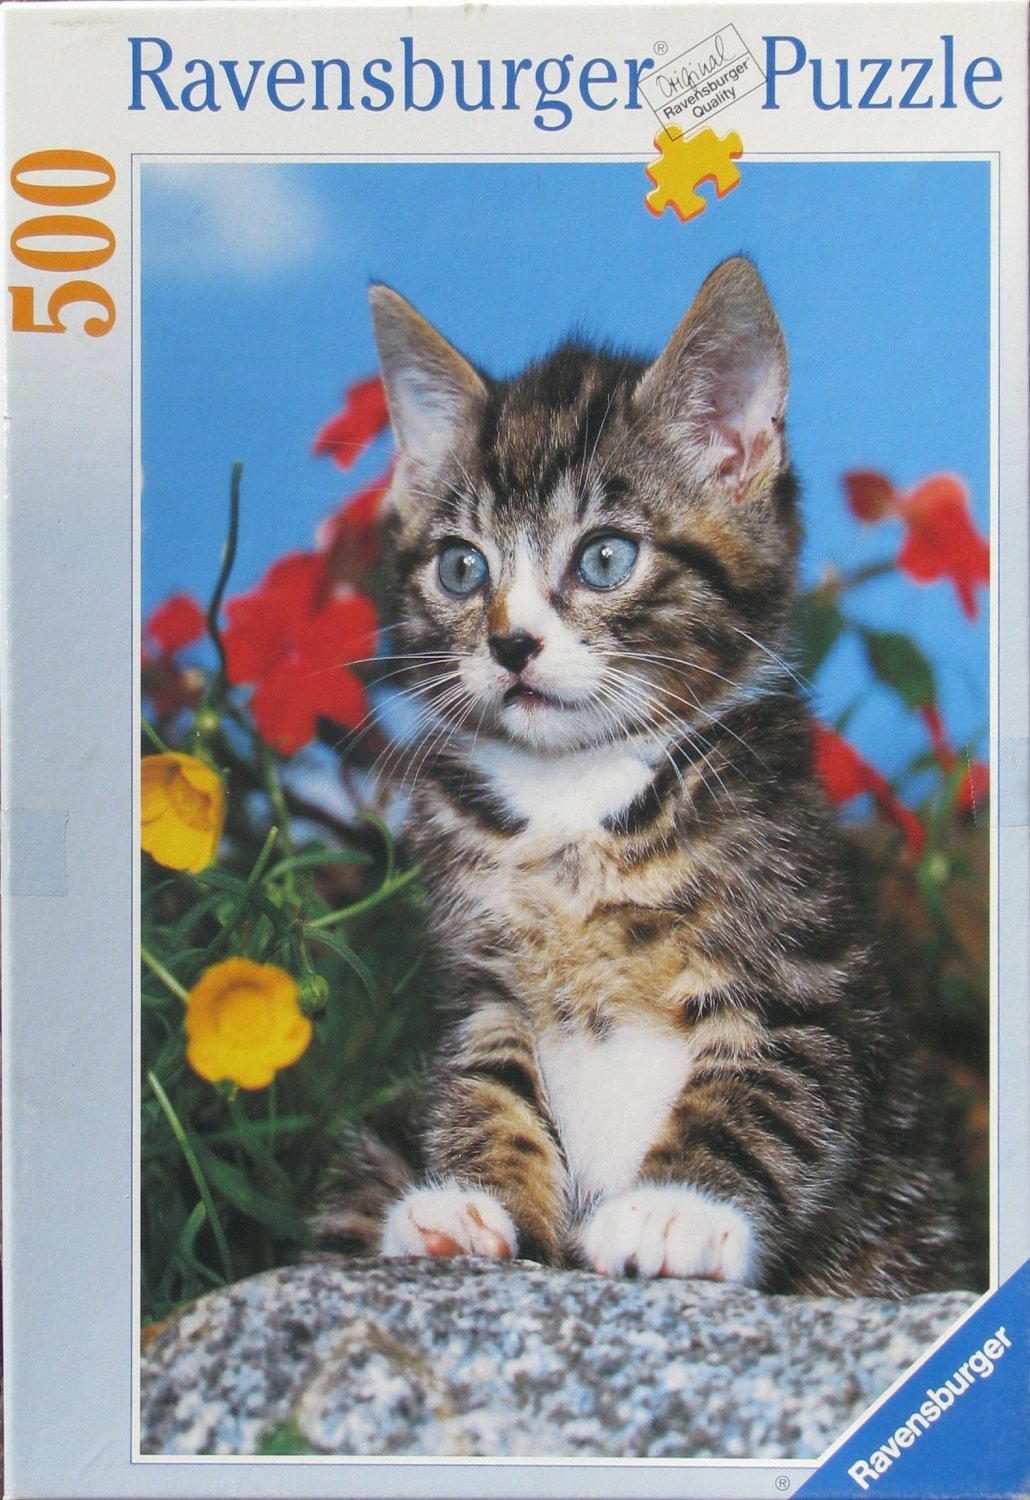 Ravensburger STRIPED KITTEN Used 500 pc Jigsaw Puzzle